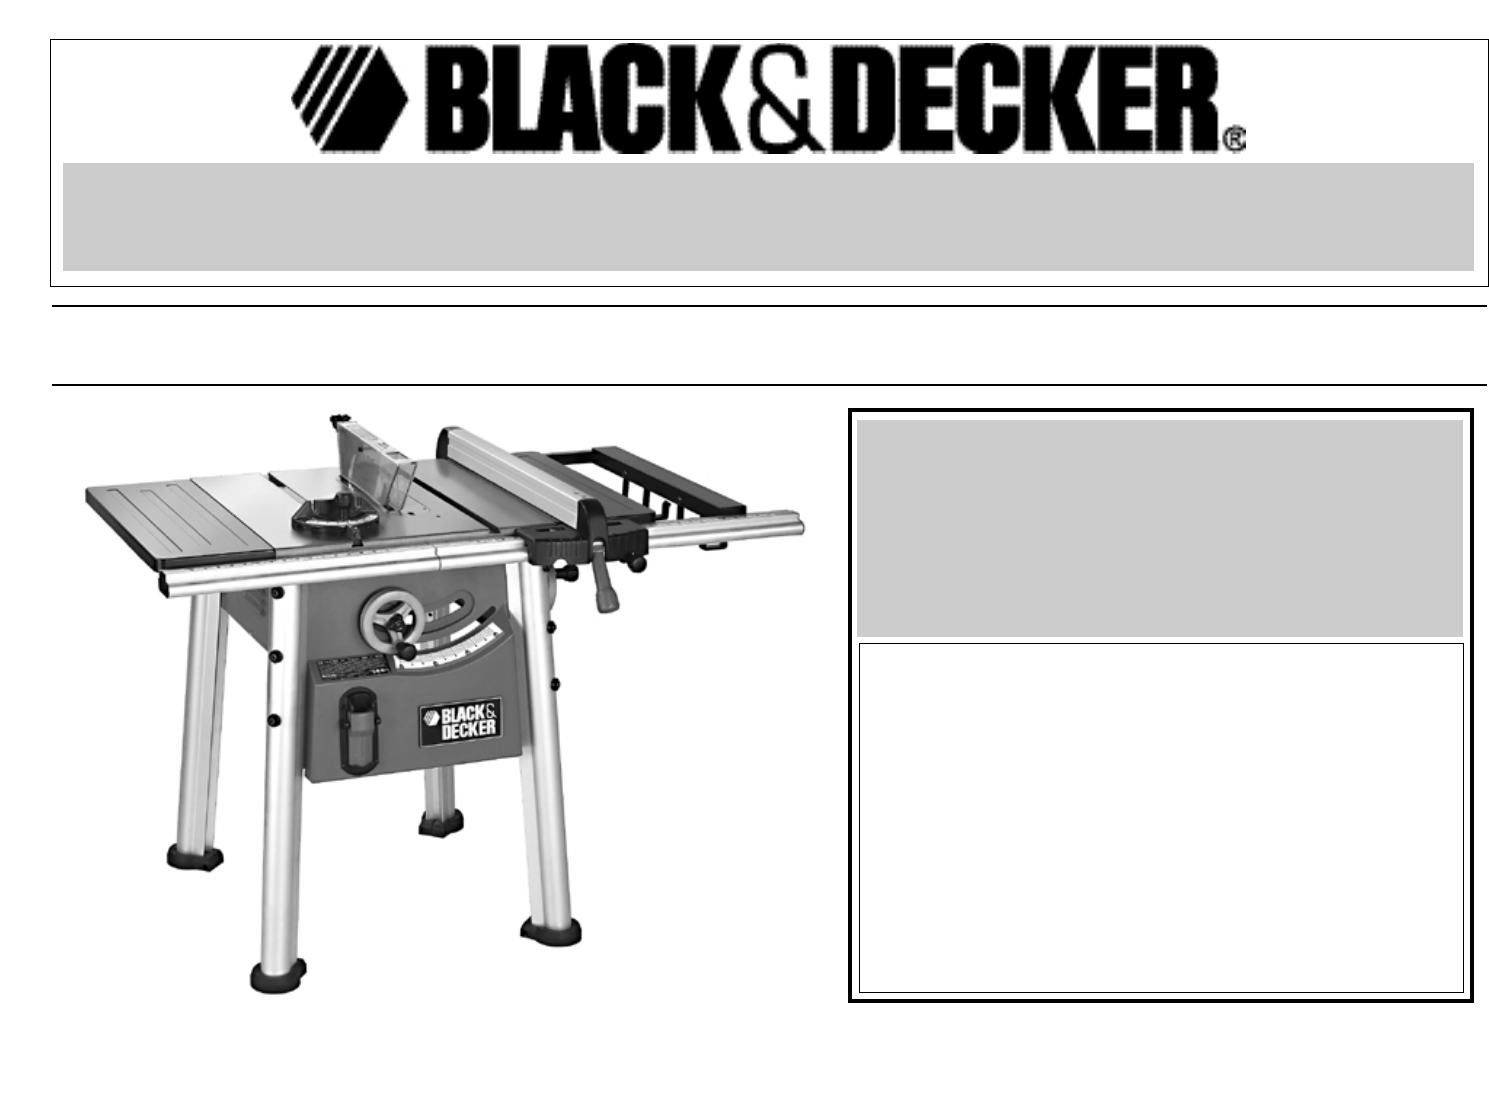 Black decker saw bt2500 user guide manualsonline greentooth Gallery